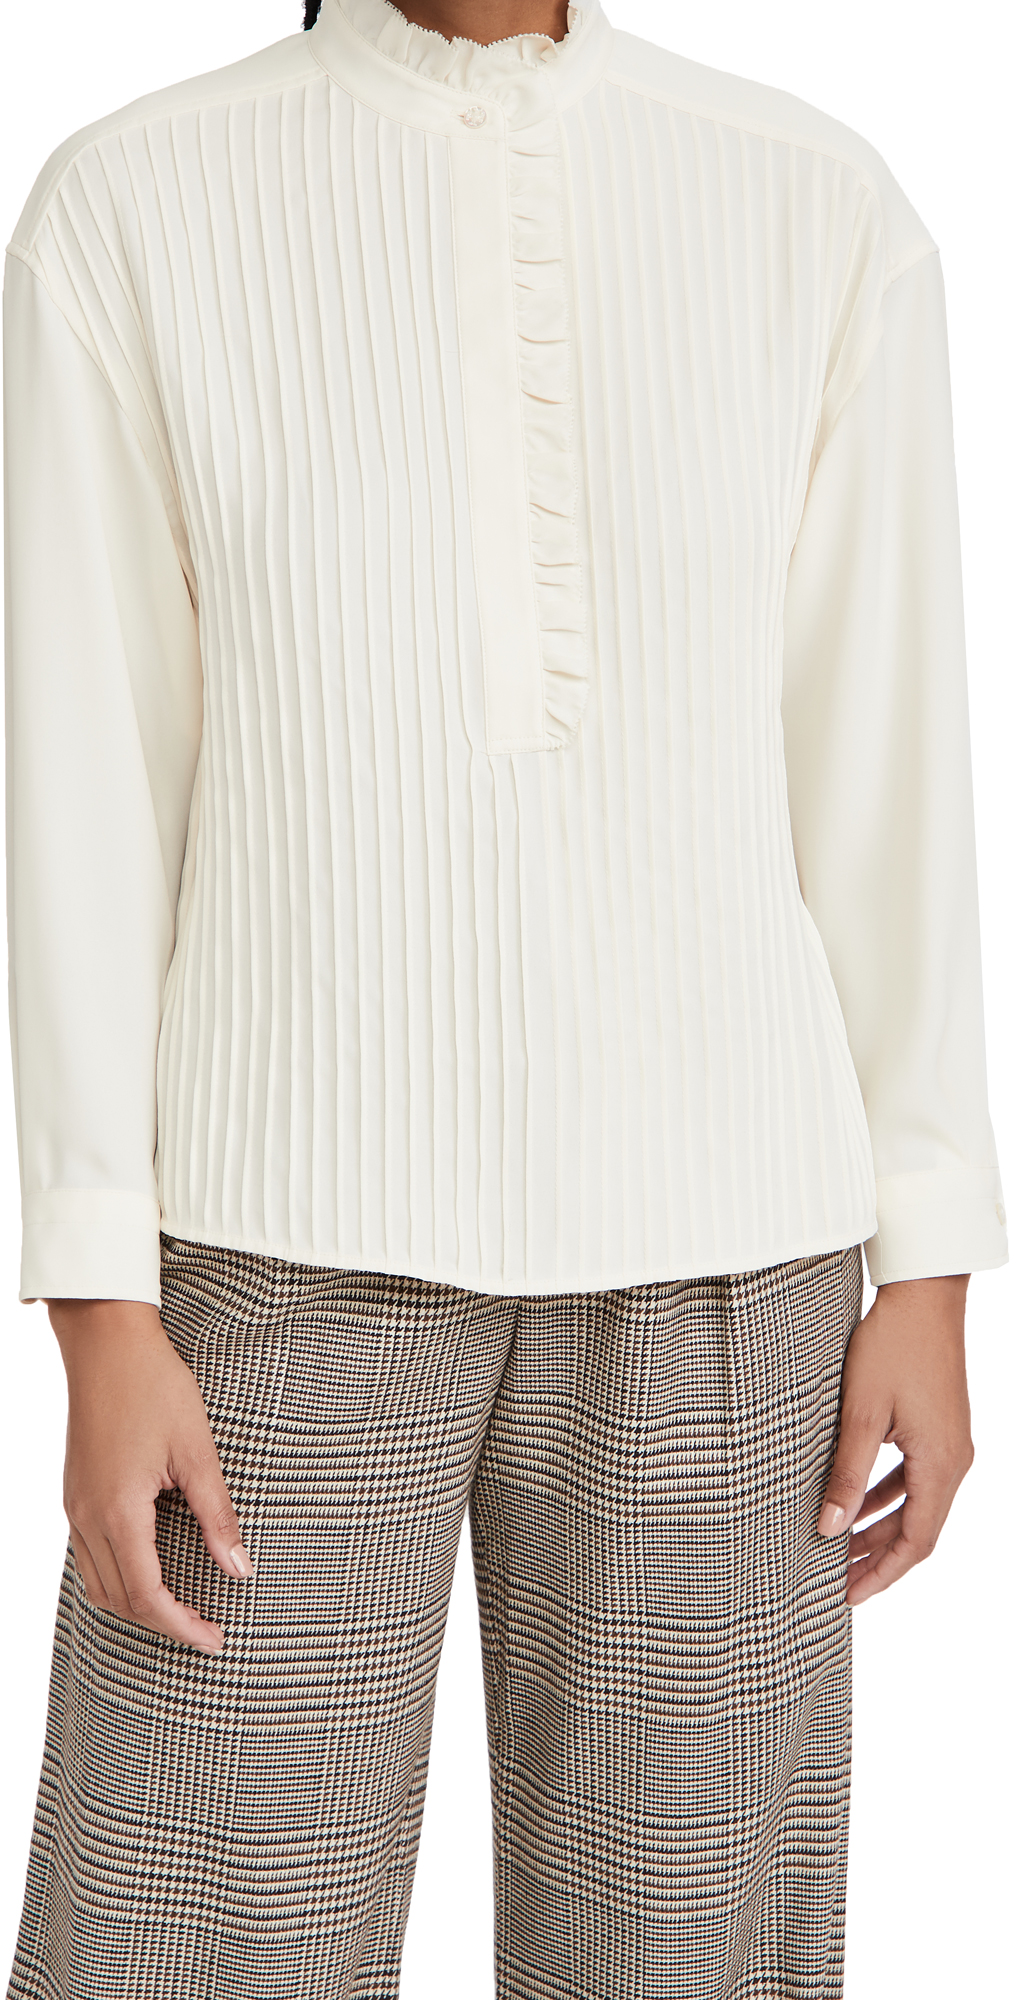 Tory Burch Deneuve Blouse